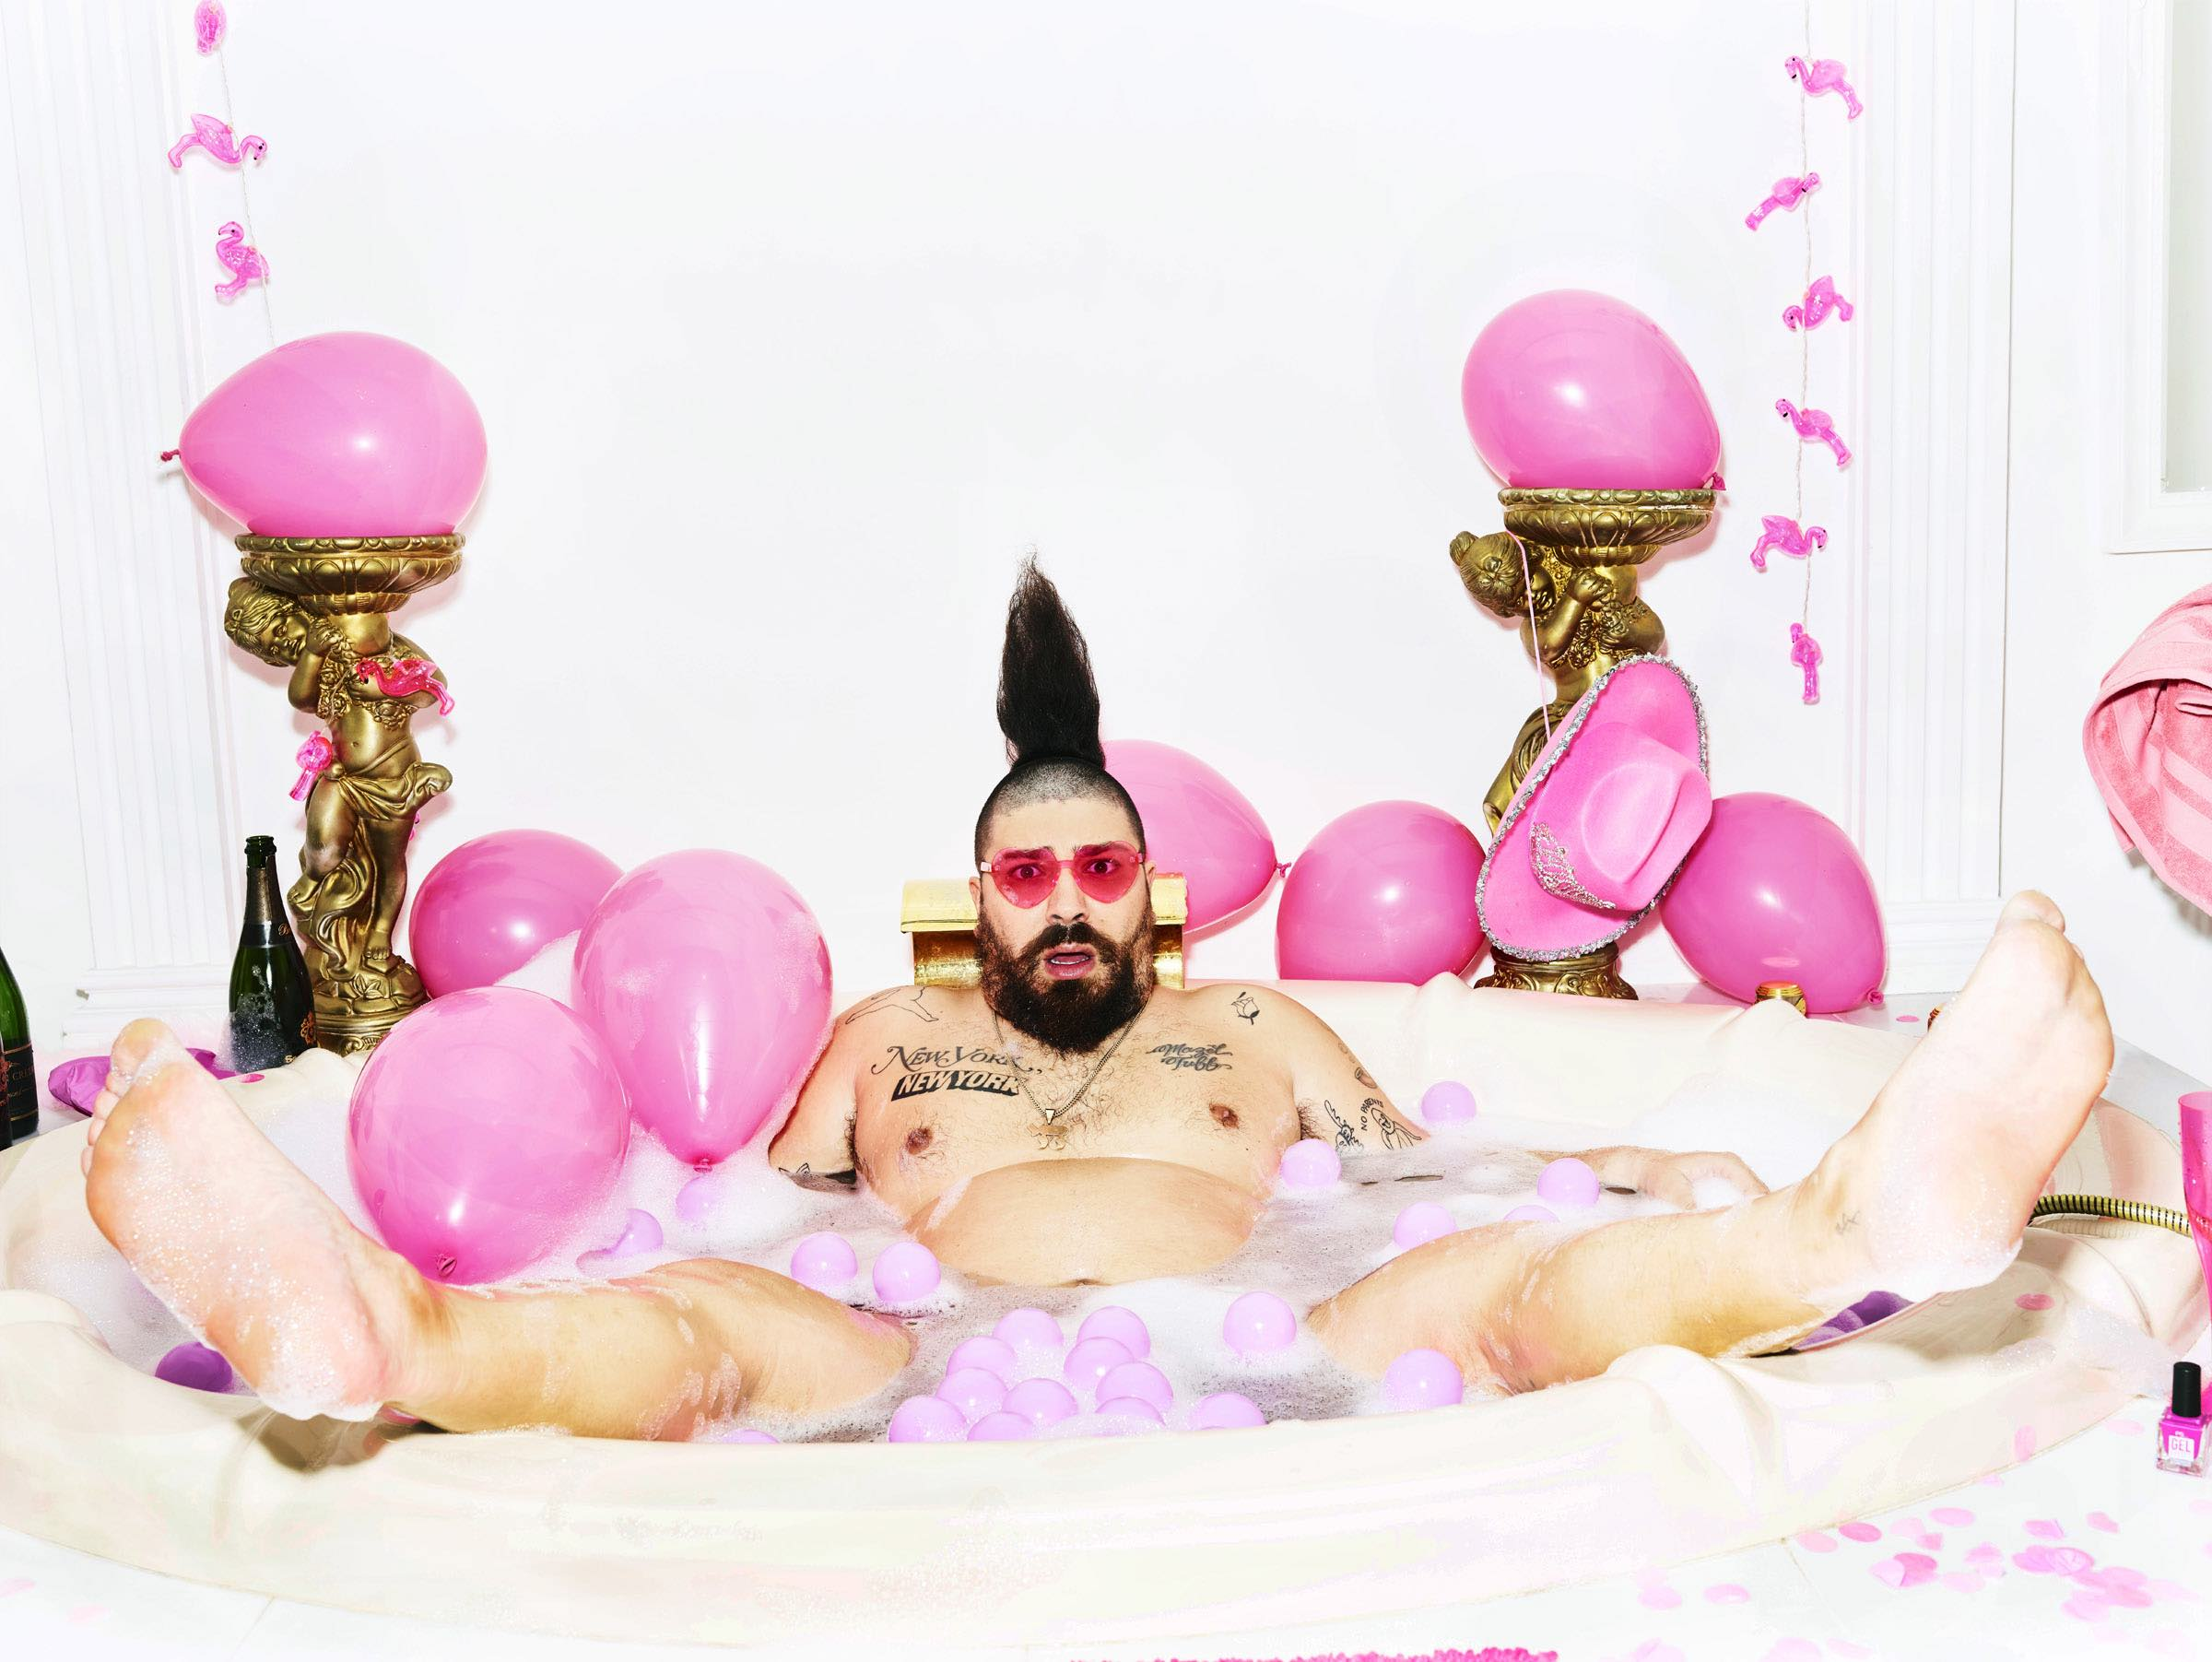 The Fat Jew Missguided Babes campaign interview